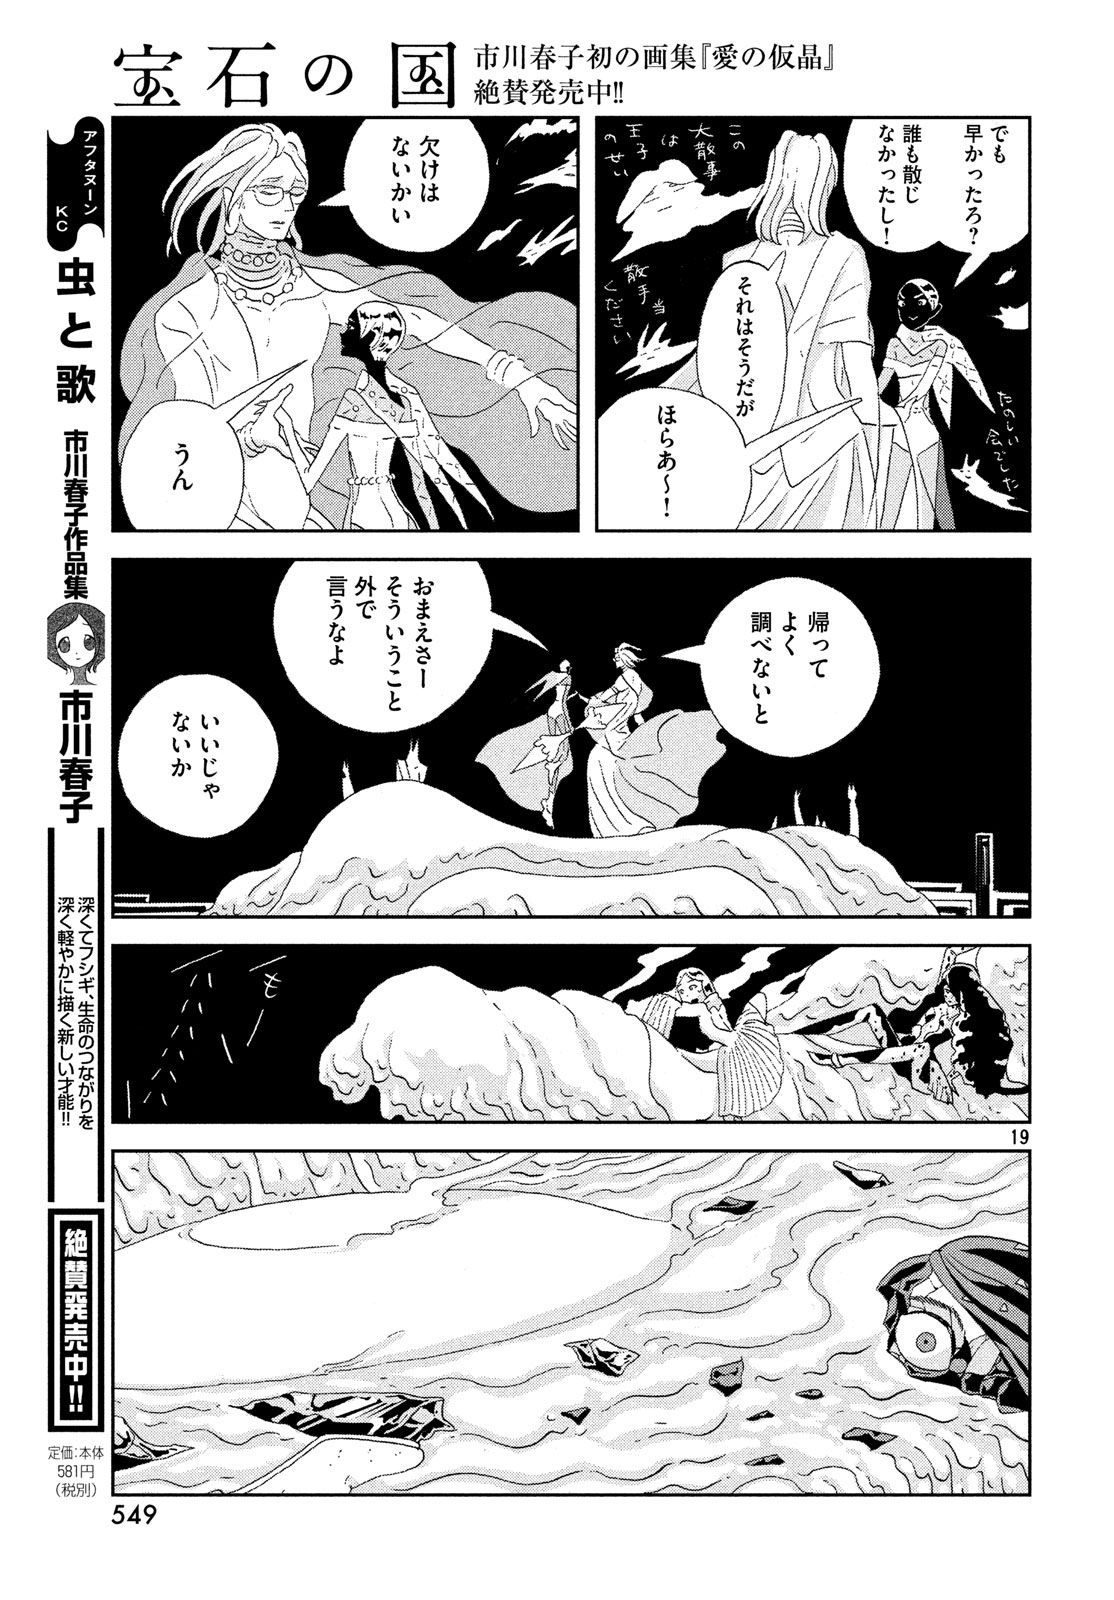 Houseki no Kuni - Raw Chapter 71 - LHScan net | Houseki no kuni